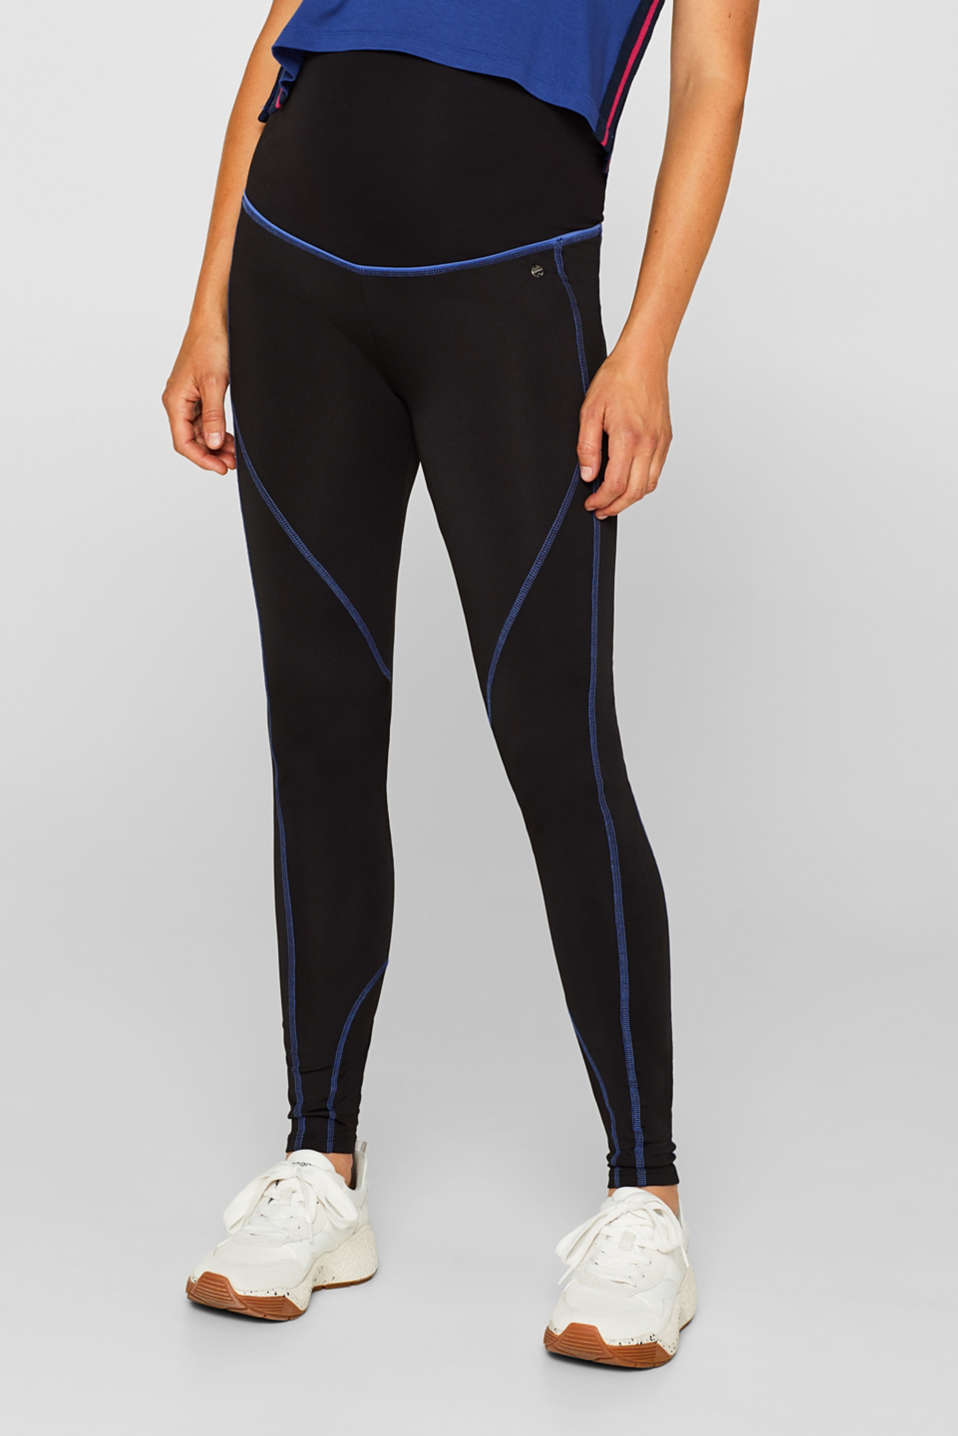 Leggings with contrasting stitching, over-bump waistband, LCBLACK, detail image number 0